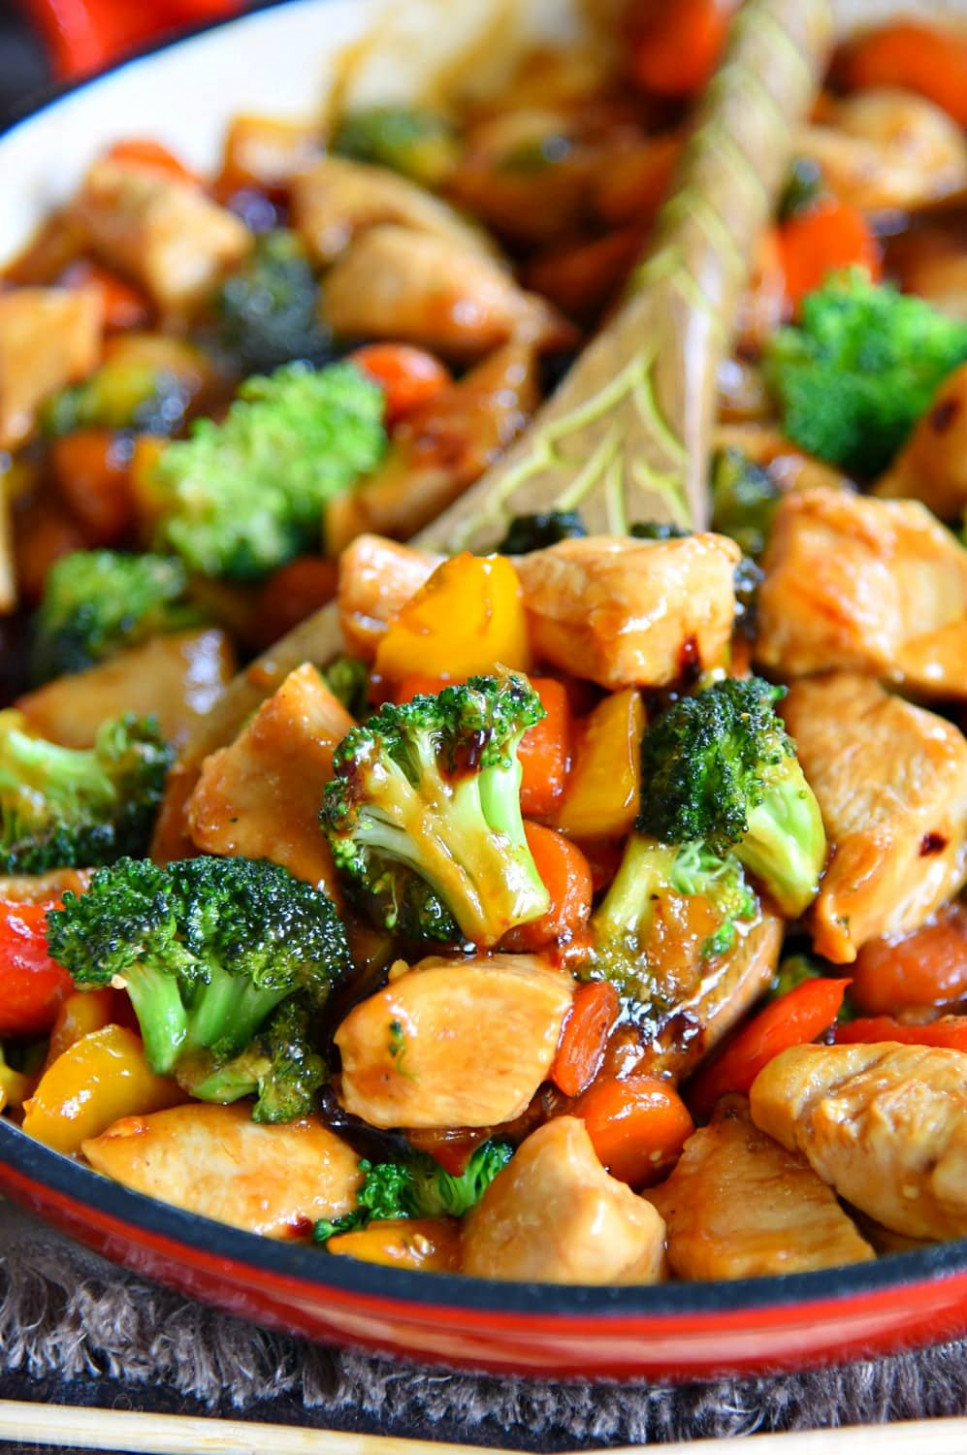 Easy Chicken Stir Fry Recipe - Mom On Timeout - outward food recipes